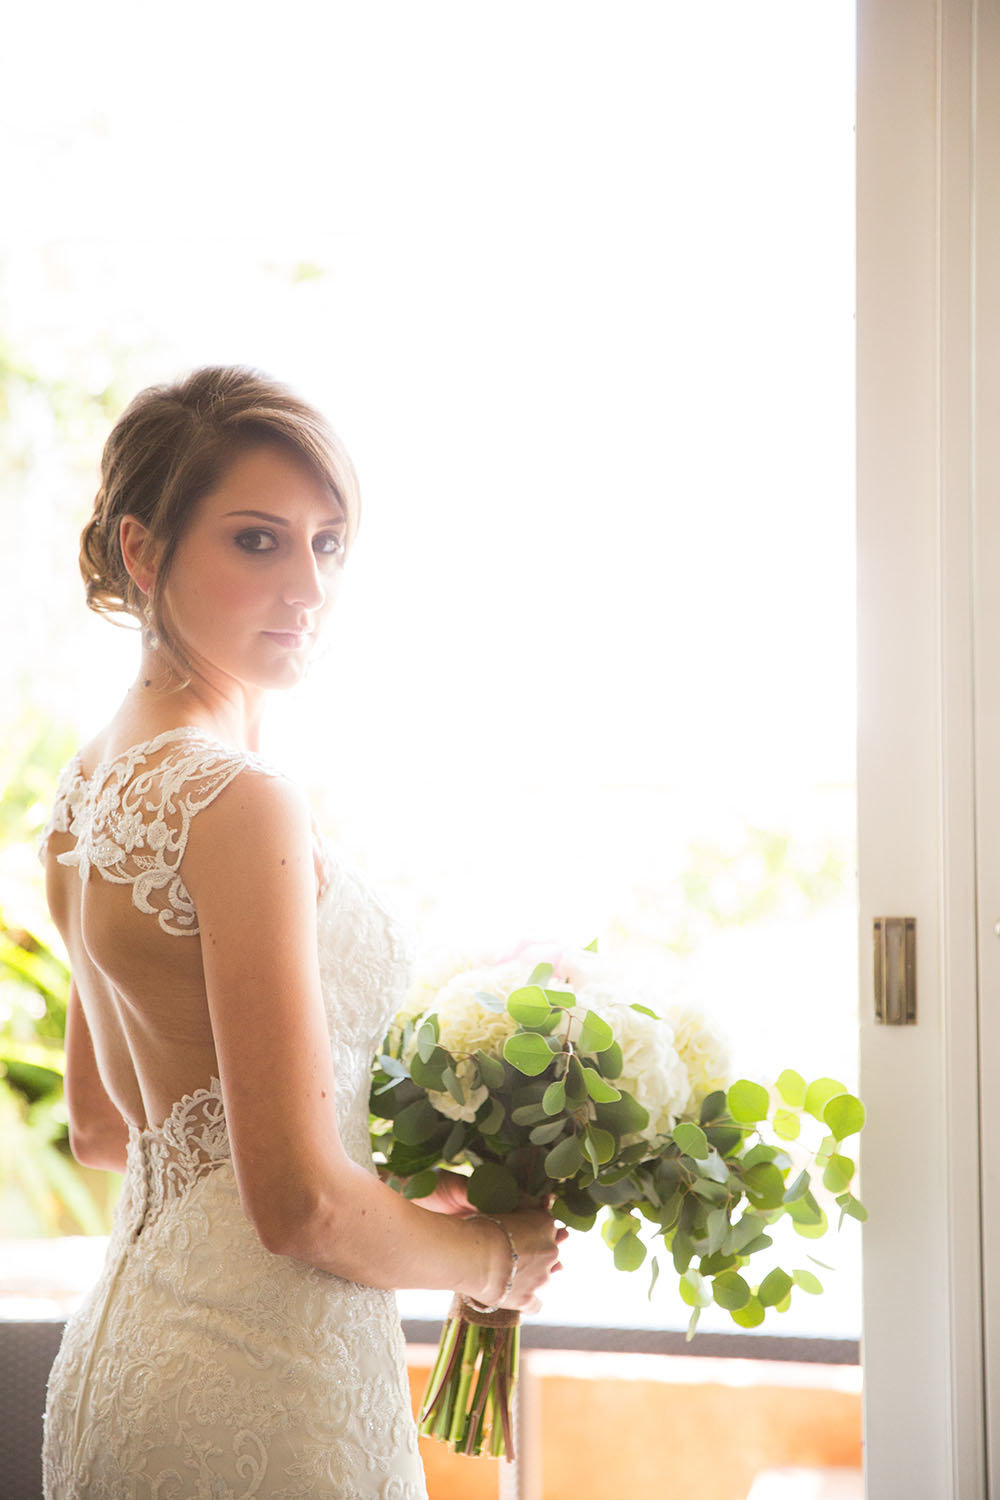 Creative lighting for bridal portraits at LAuberge